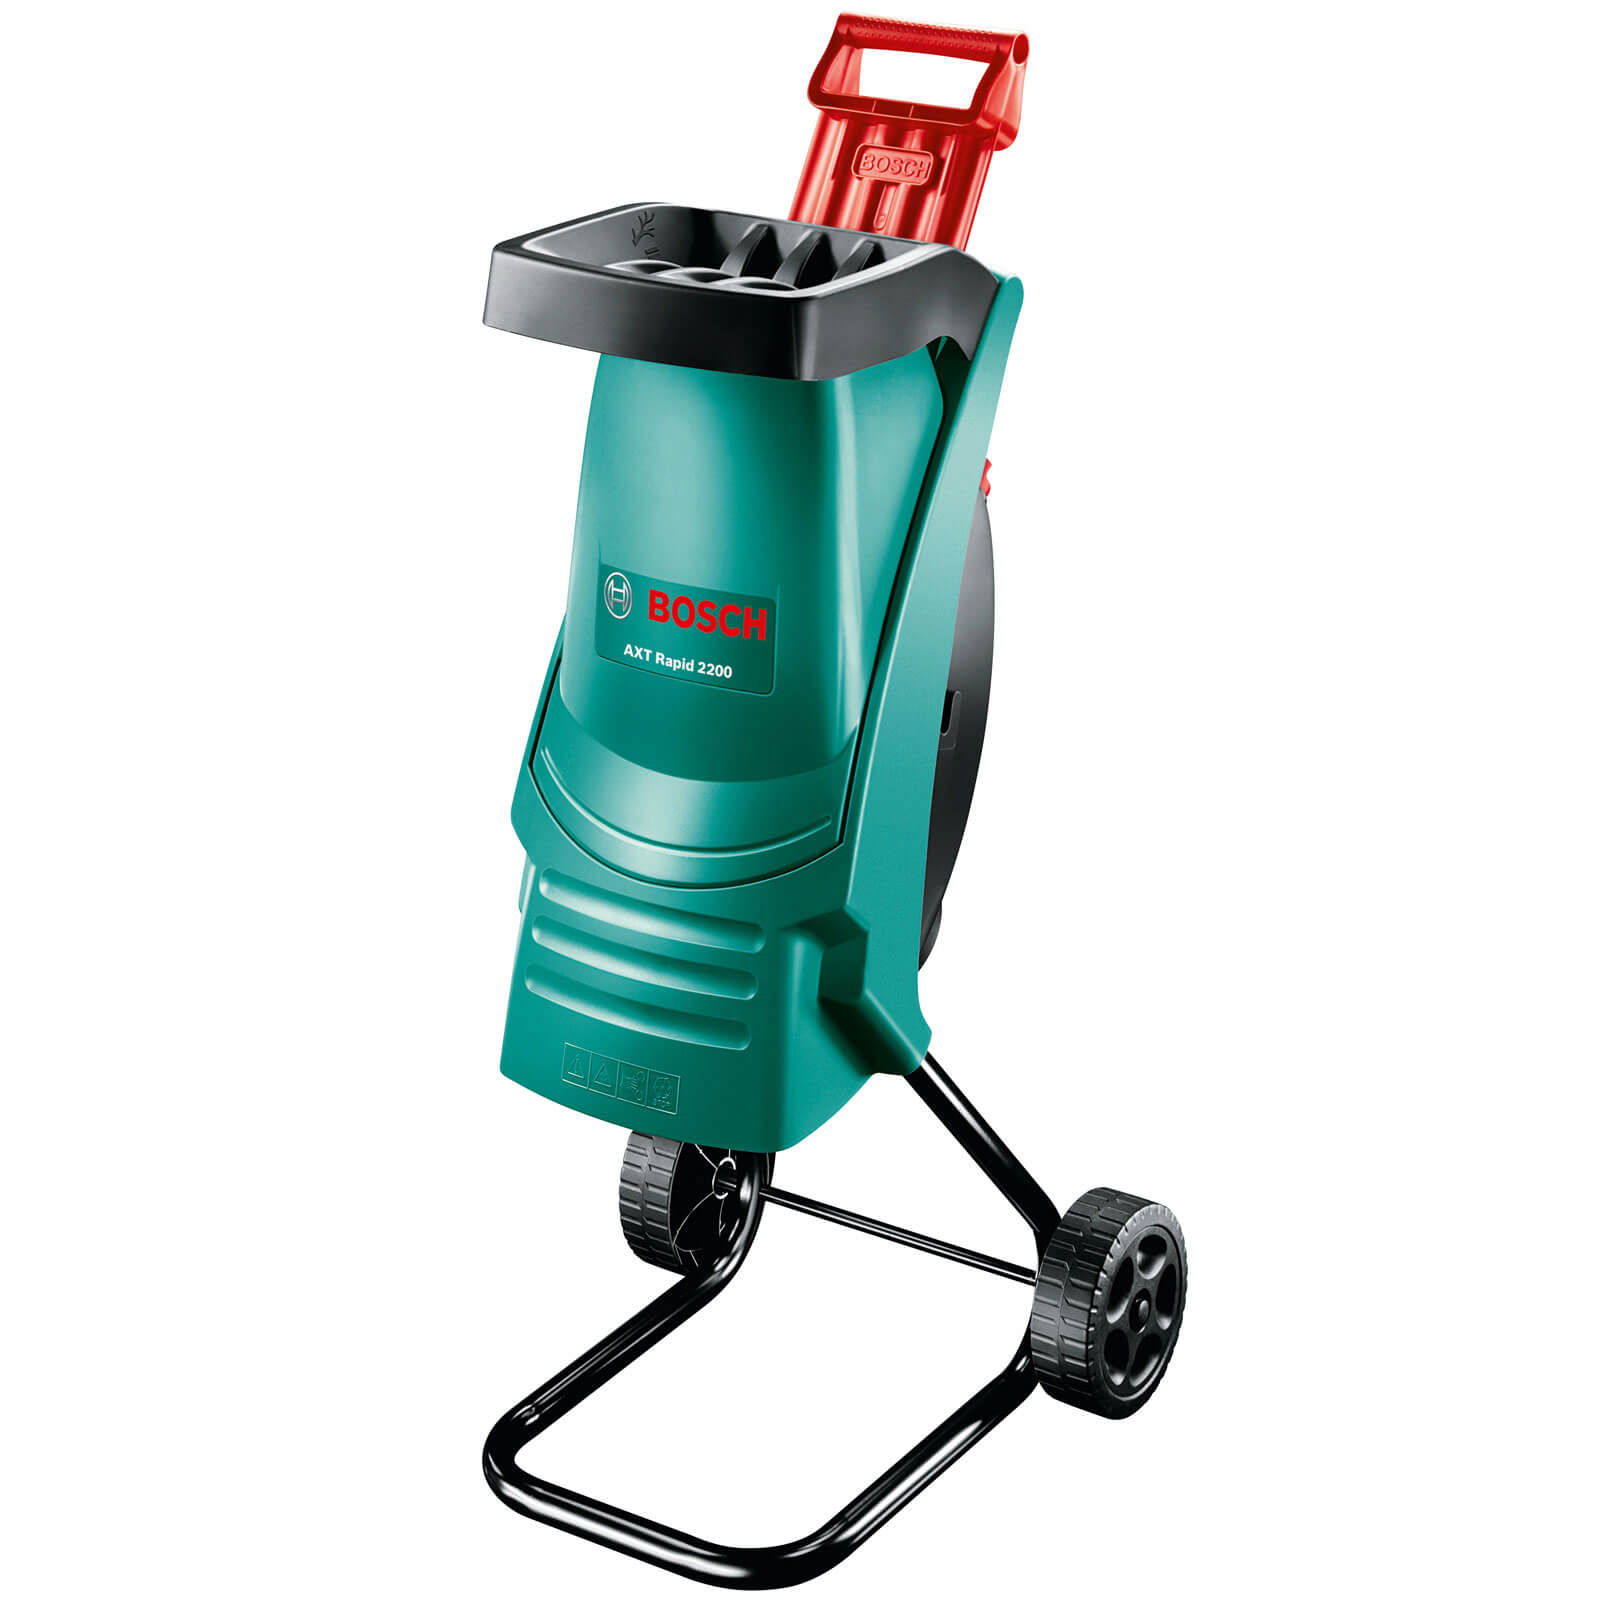 Bosch AXT RAPID 2200 Garden Shredder Max 40mm Capacity 2200w 240v Plus FREE Spare Blade Worth &pound;19.99